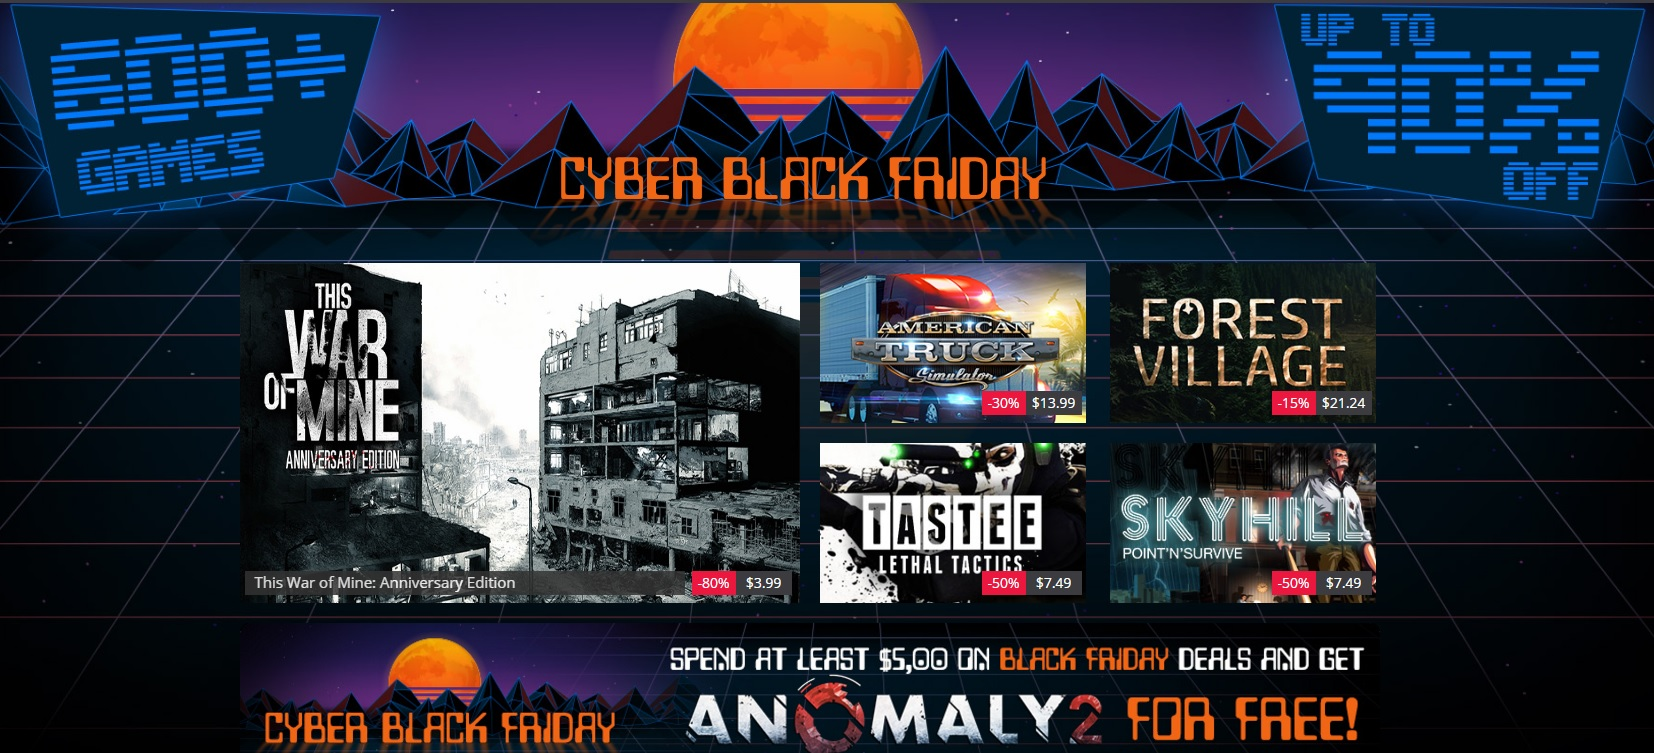 Games Republic Black Friday Deals Has Over 600 Games on Sale